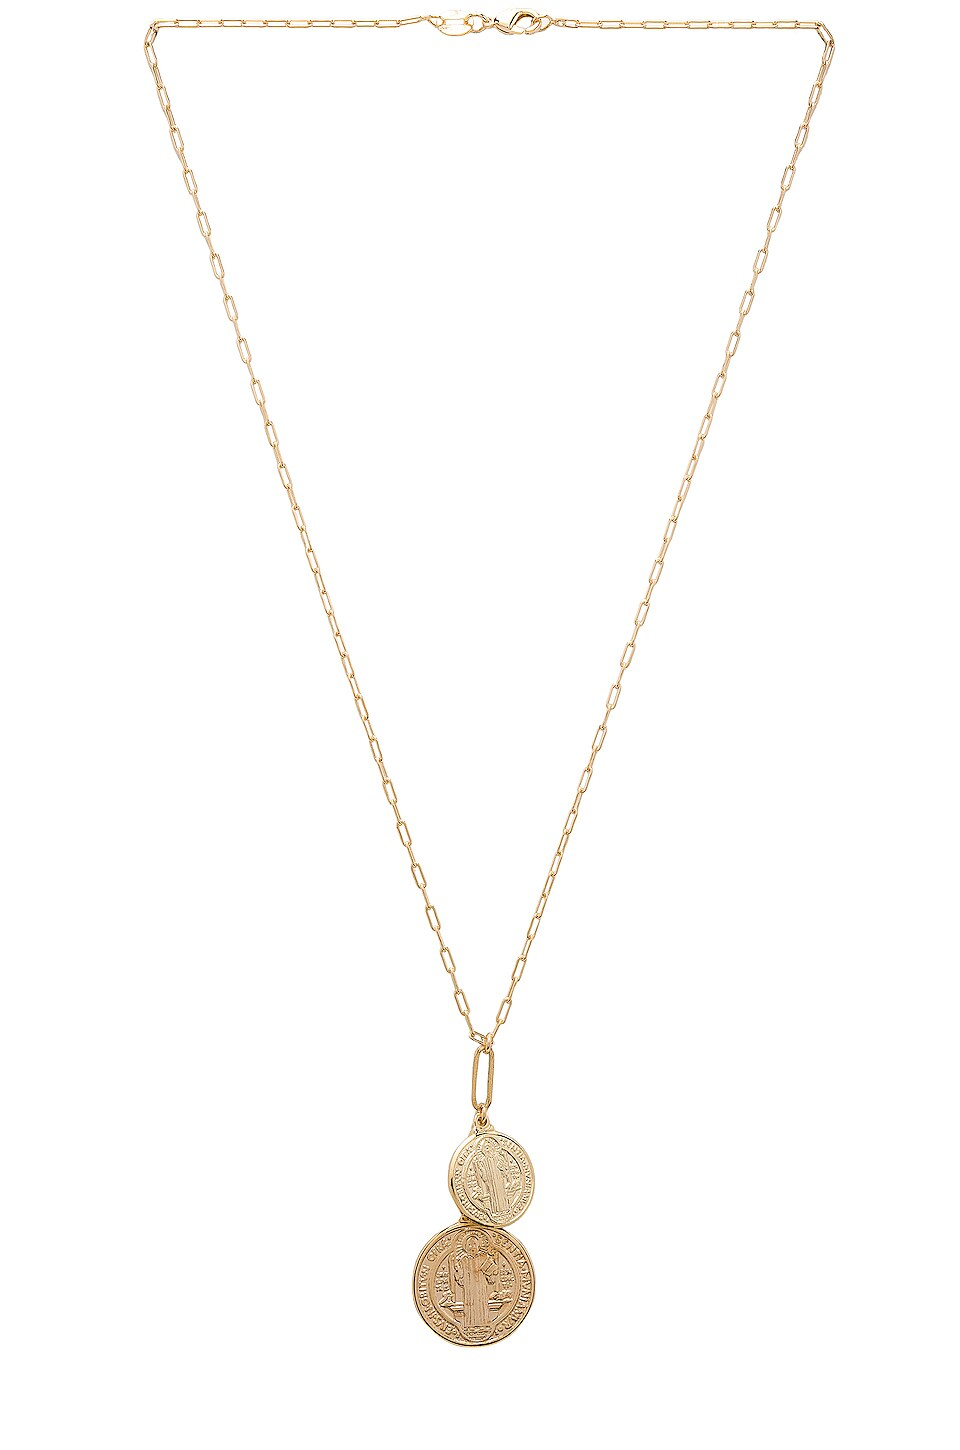 JOOLZ BY MARTHA CALVO Double Metal Benedict Necklace in Metallic Gold